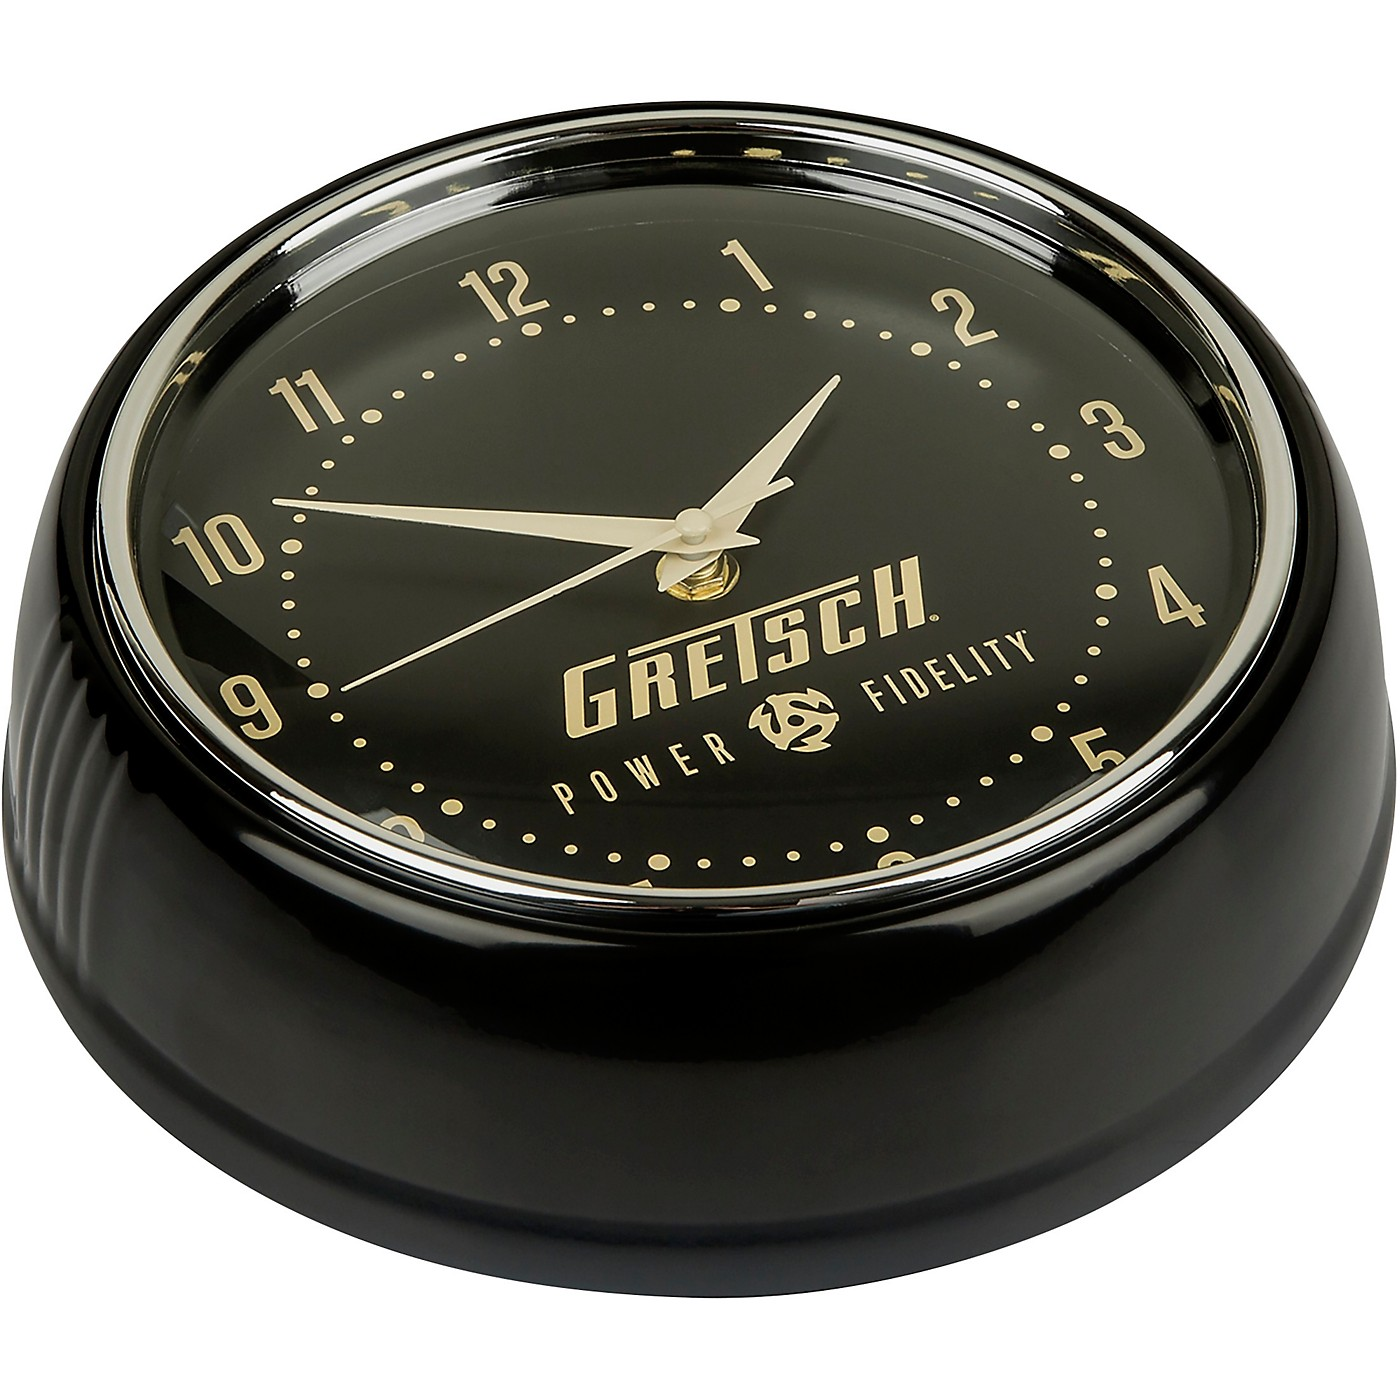 Gretsch Power And Fidelity Retro Wall Clock thumbnail